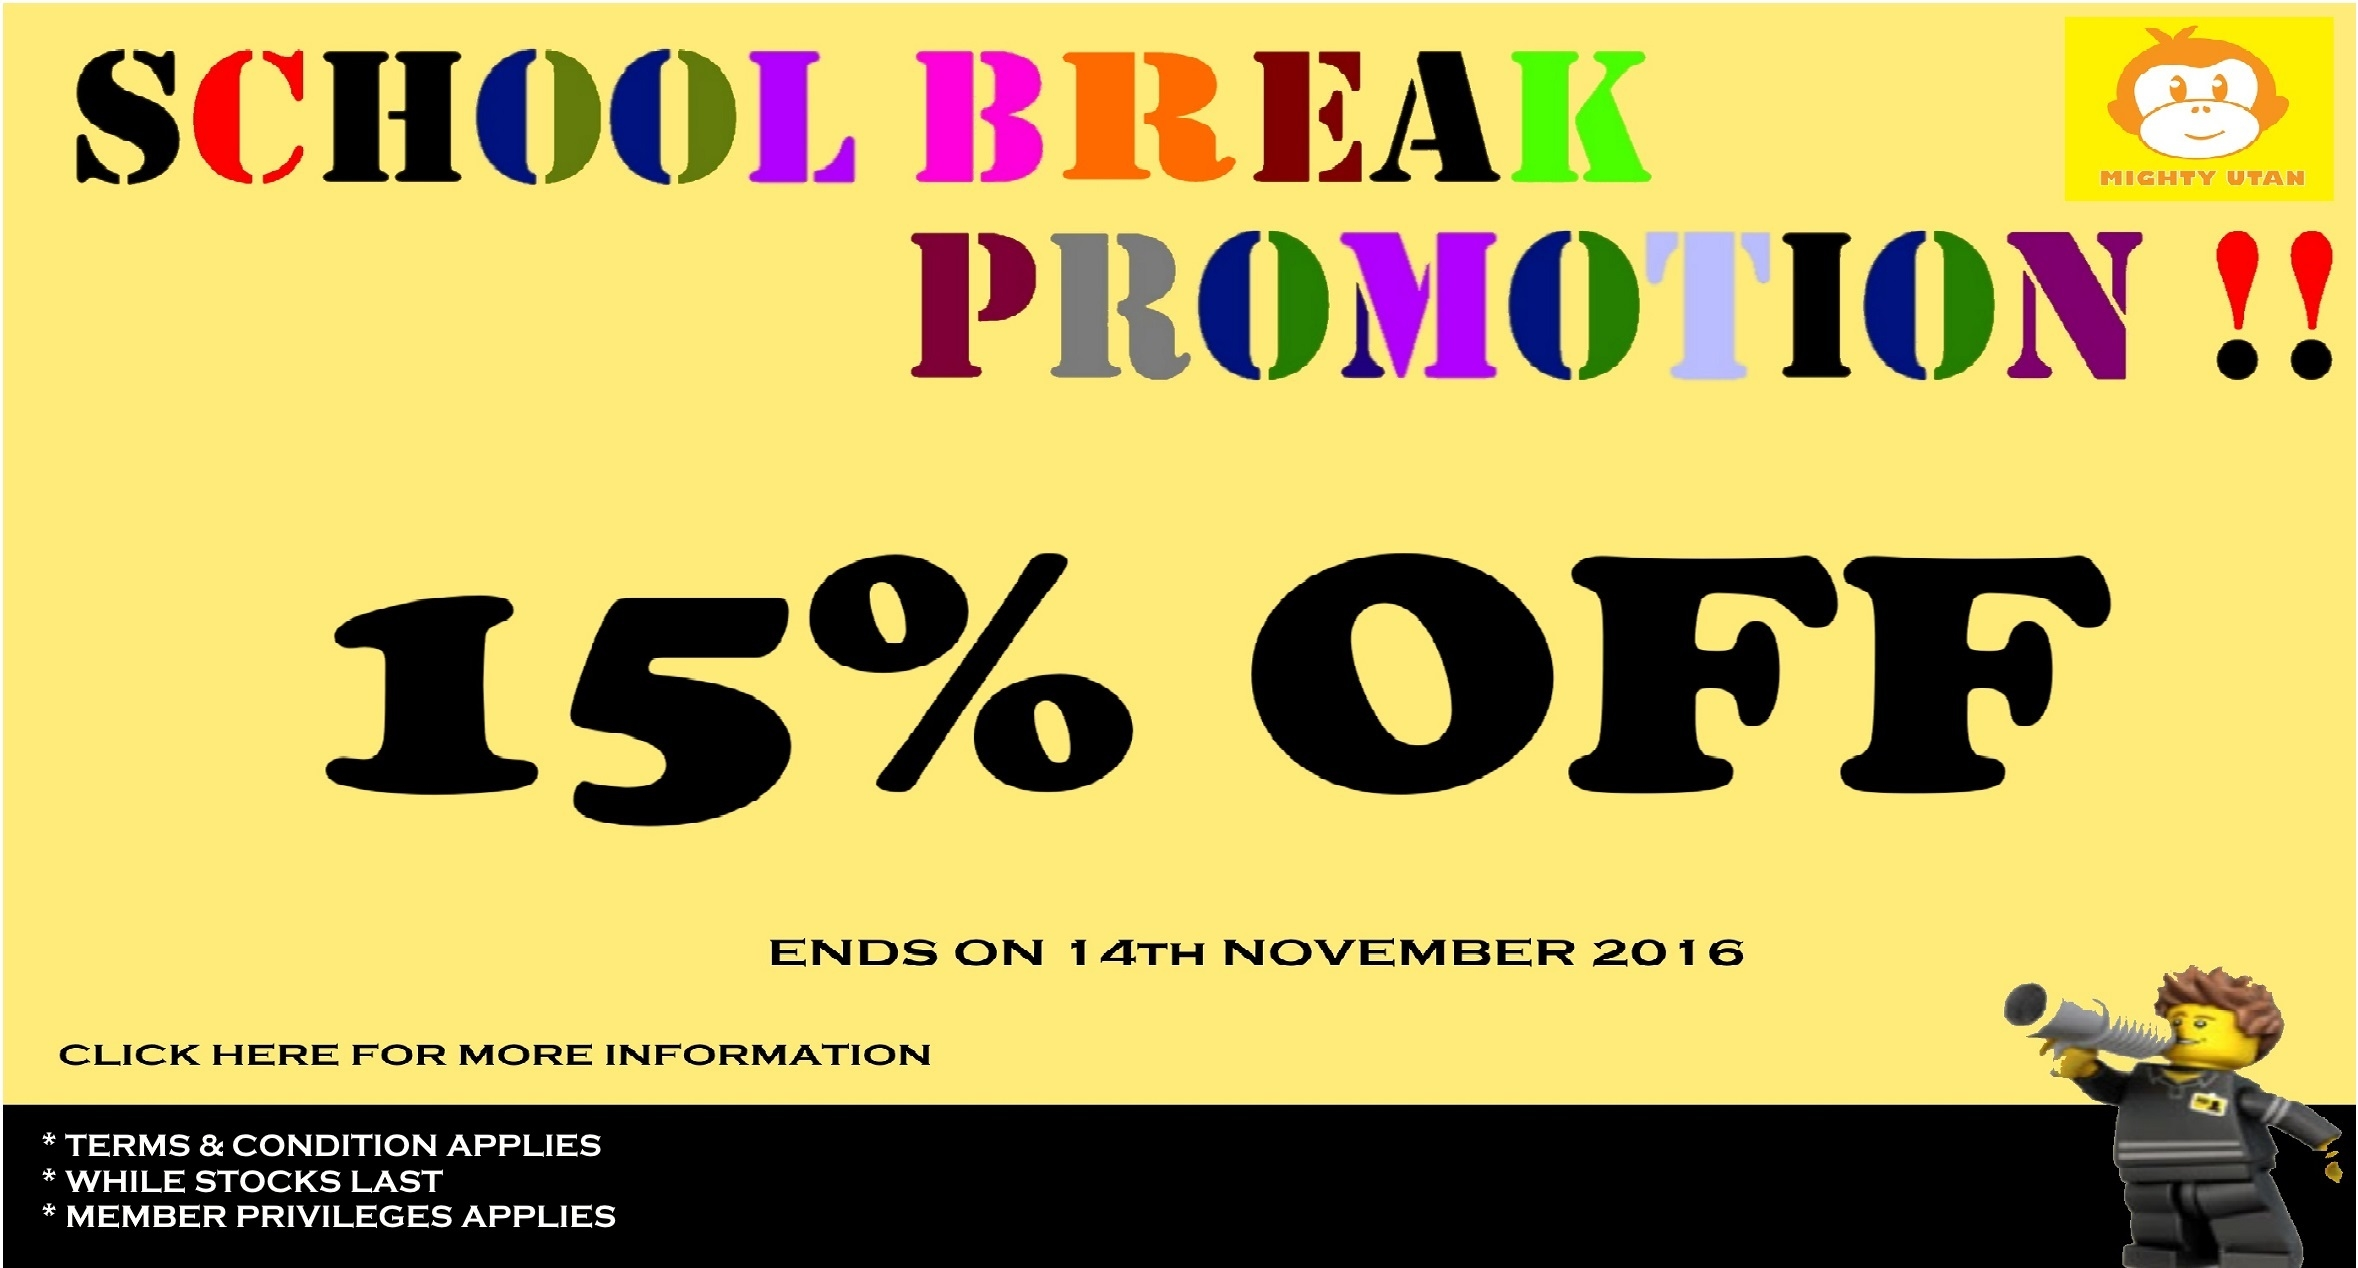 SCHOOL BREAK PROMOTION 15% OFF